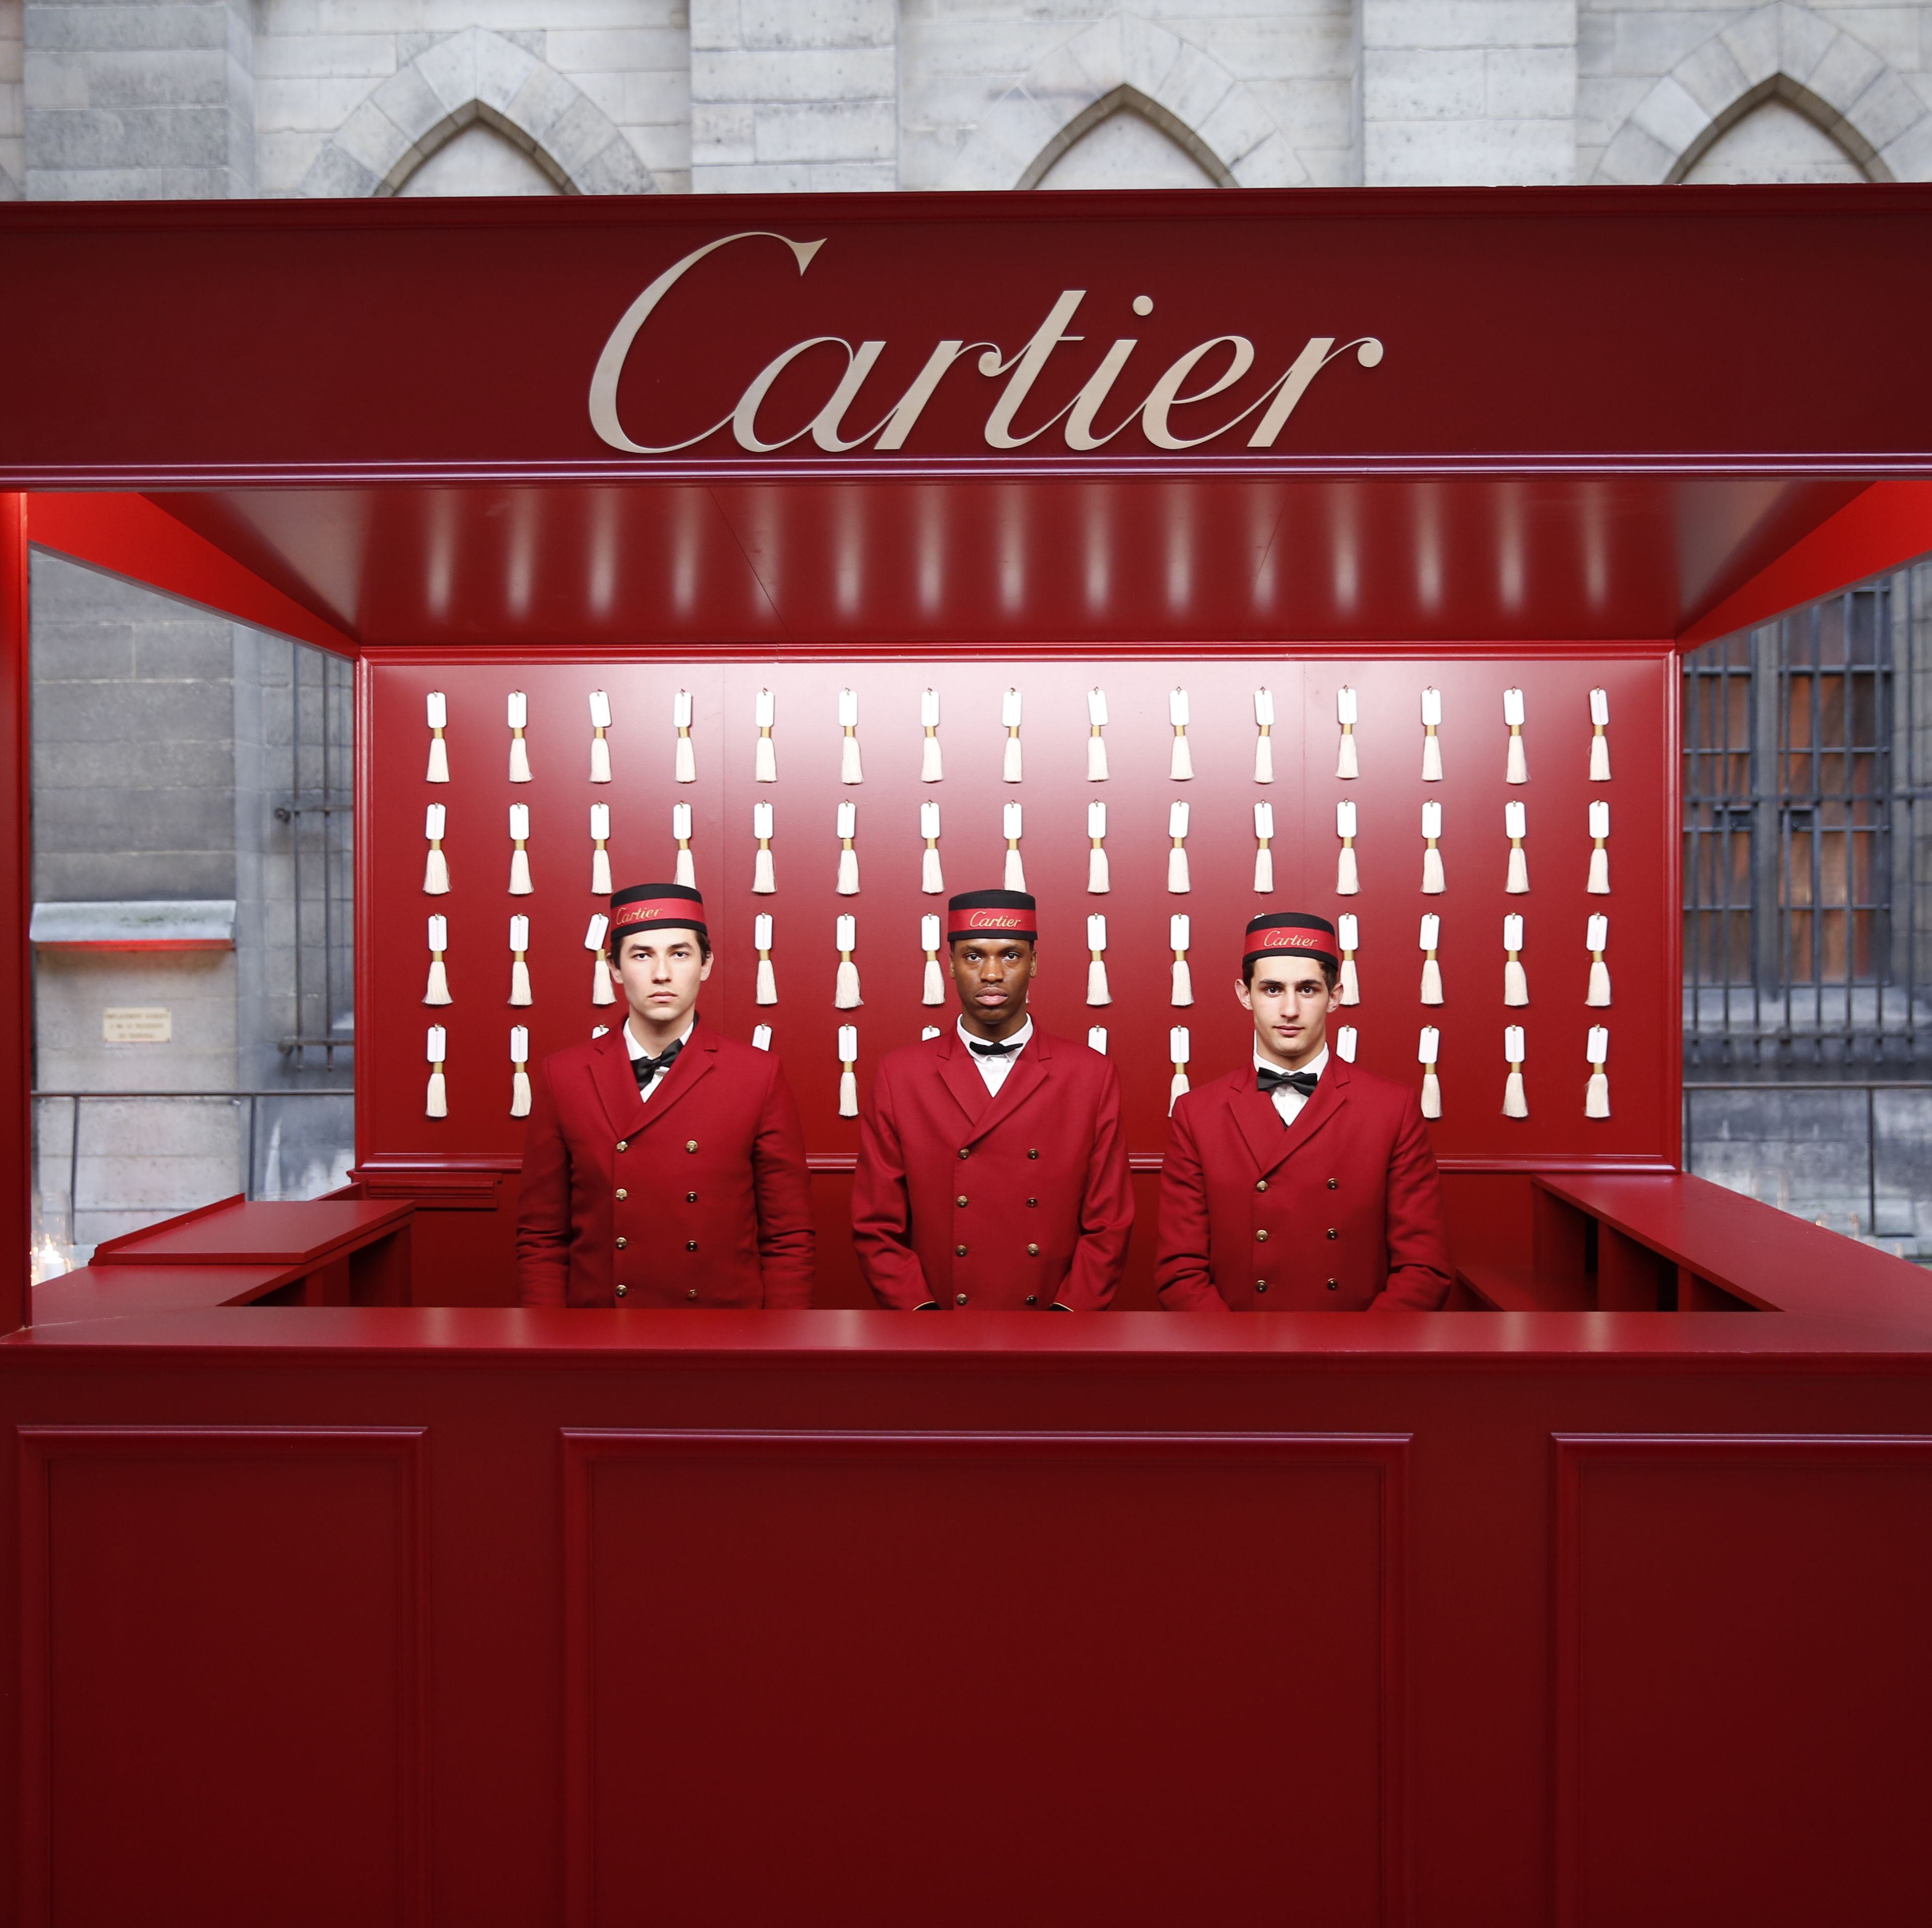 It was a glamorous affair on Wednesday evening as guests entered the iron gates of La Conceirgerie in Paris to celebrate the launch of Cartier's new collection, Clash de Cartier . The start-studded guest list included Claire Foy, Jake Gyllenhaal, Sofia Coppola, Lucy Boynton, and Tilda Swinton, who mingled under archways and gilded candelabras before enjoying dinner and surprise performances by L'Impératrice and Billy Idol.